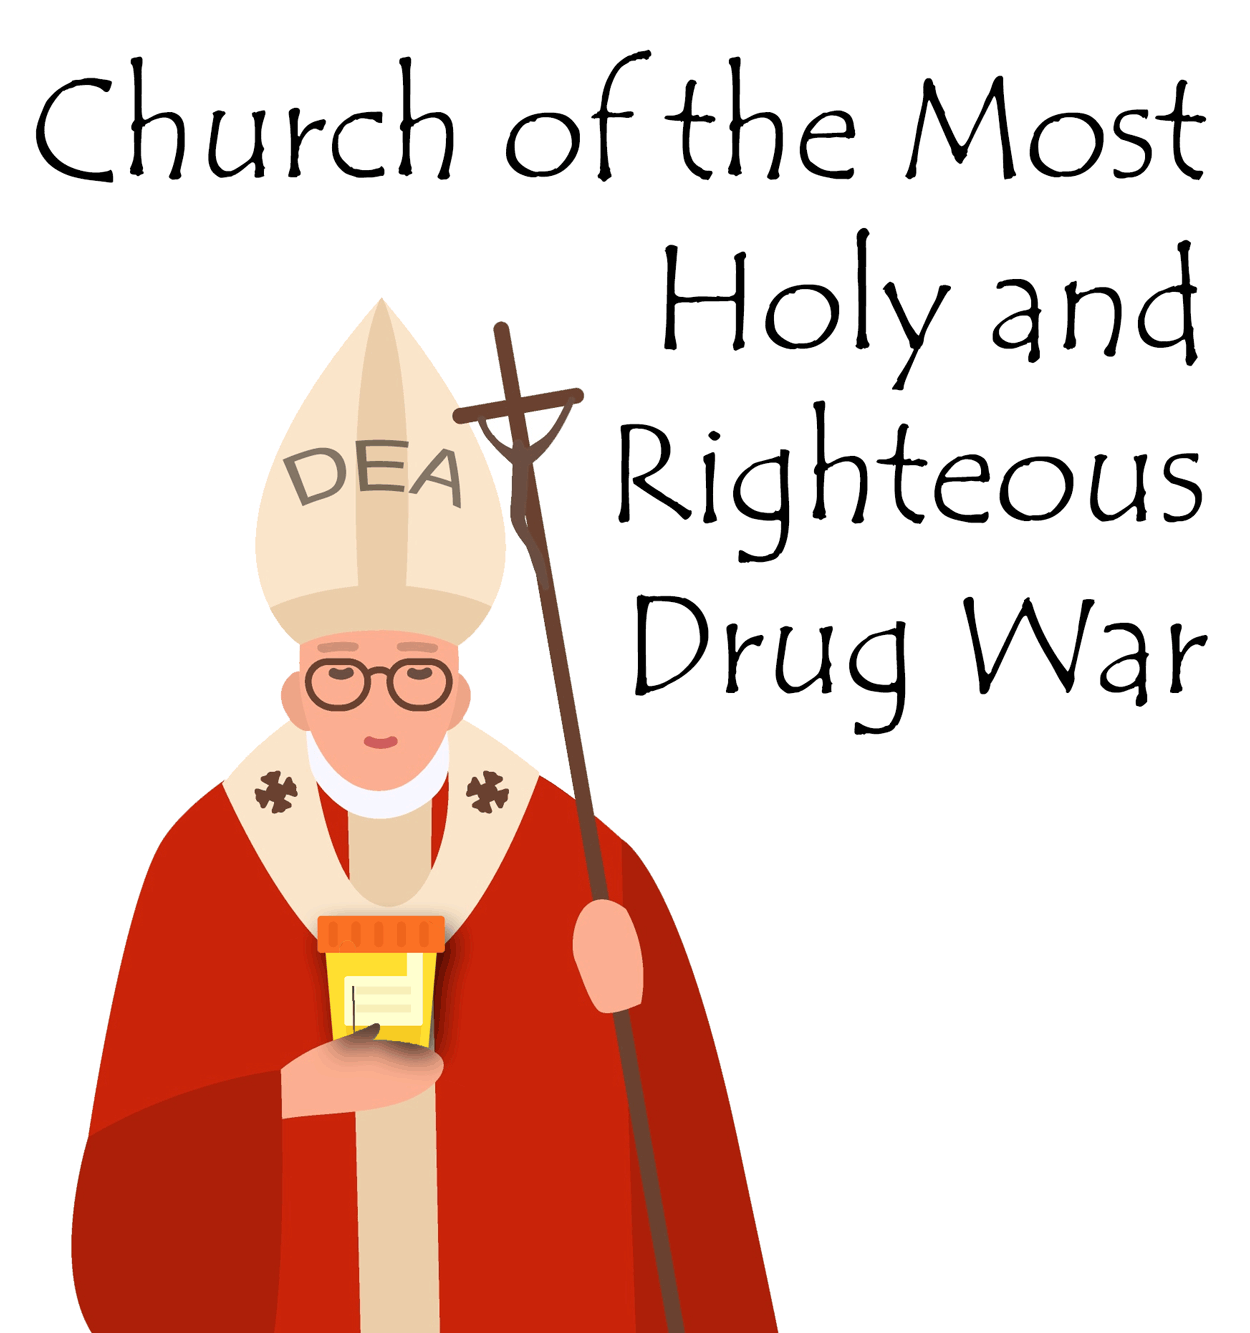 Church of the Most Holy and Righteous Drug War